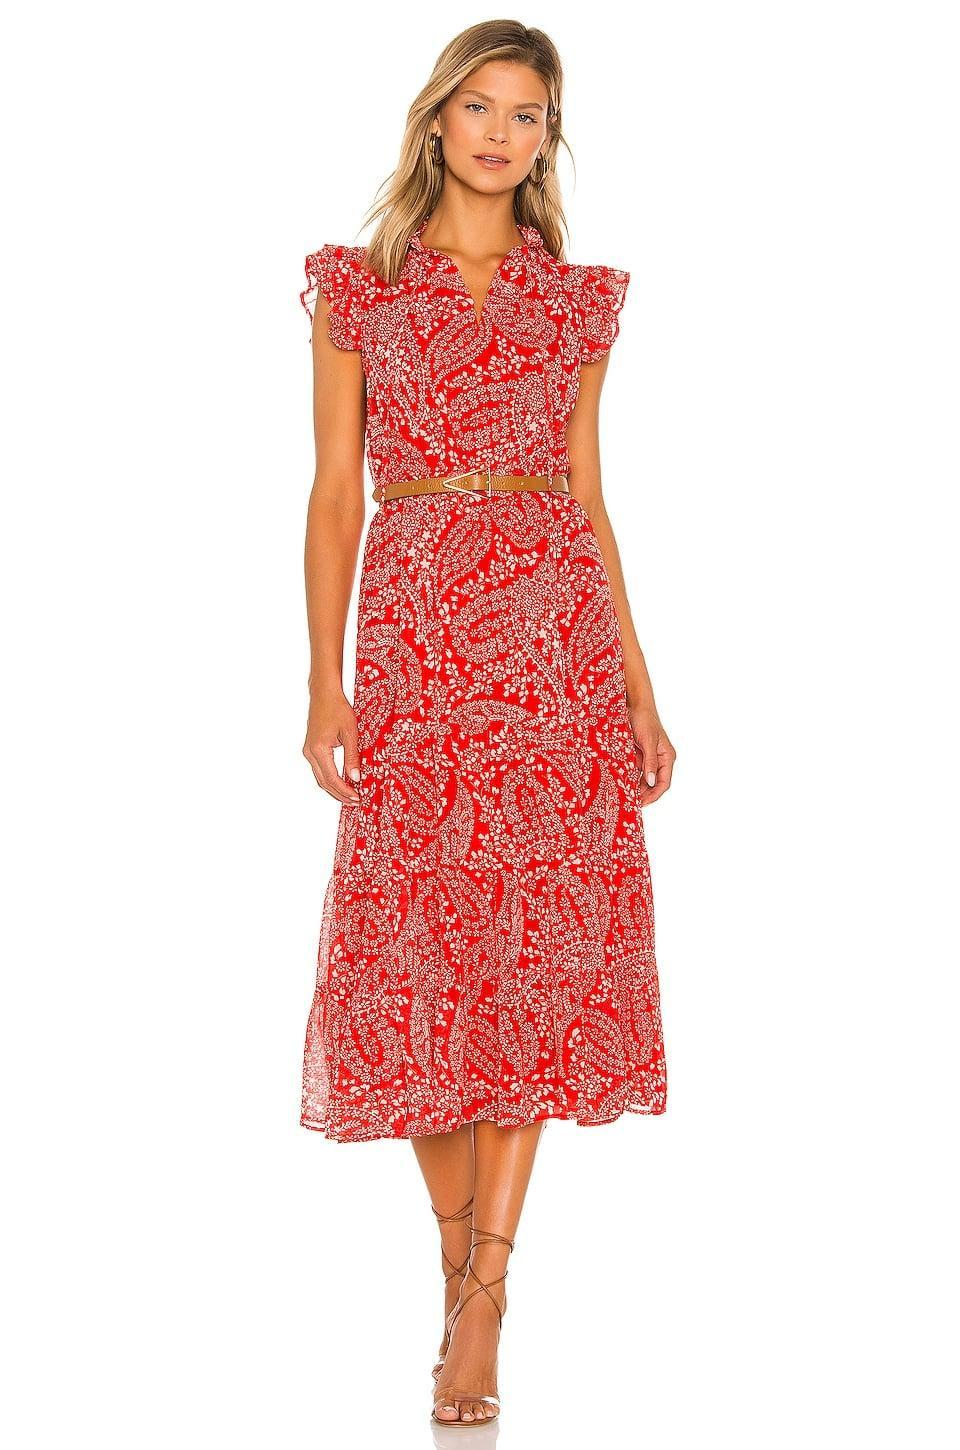 <p>The <span>BB Dakota by Steve Madden Canyon Moon Dress in Floral Paisley</span> ($119) is such a bright and cheerful dress for the autumn season. The floral paisley print will pair perfectly with your favorite booties. </p>